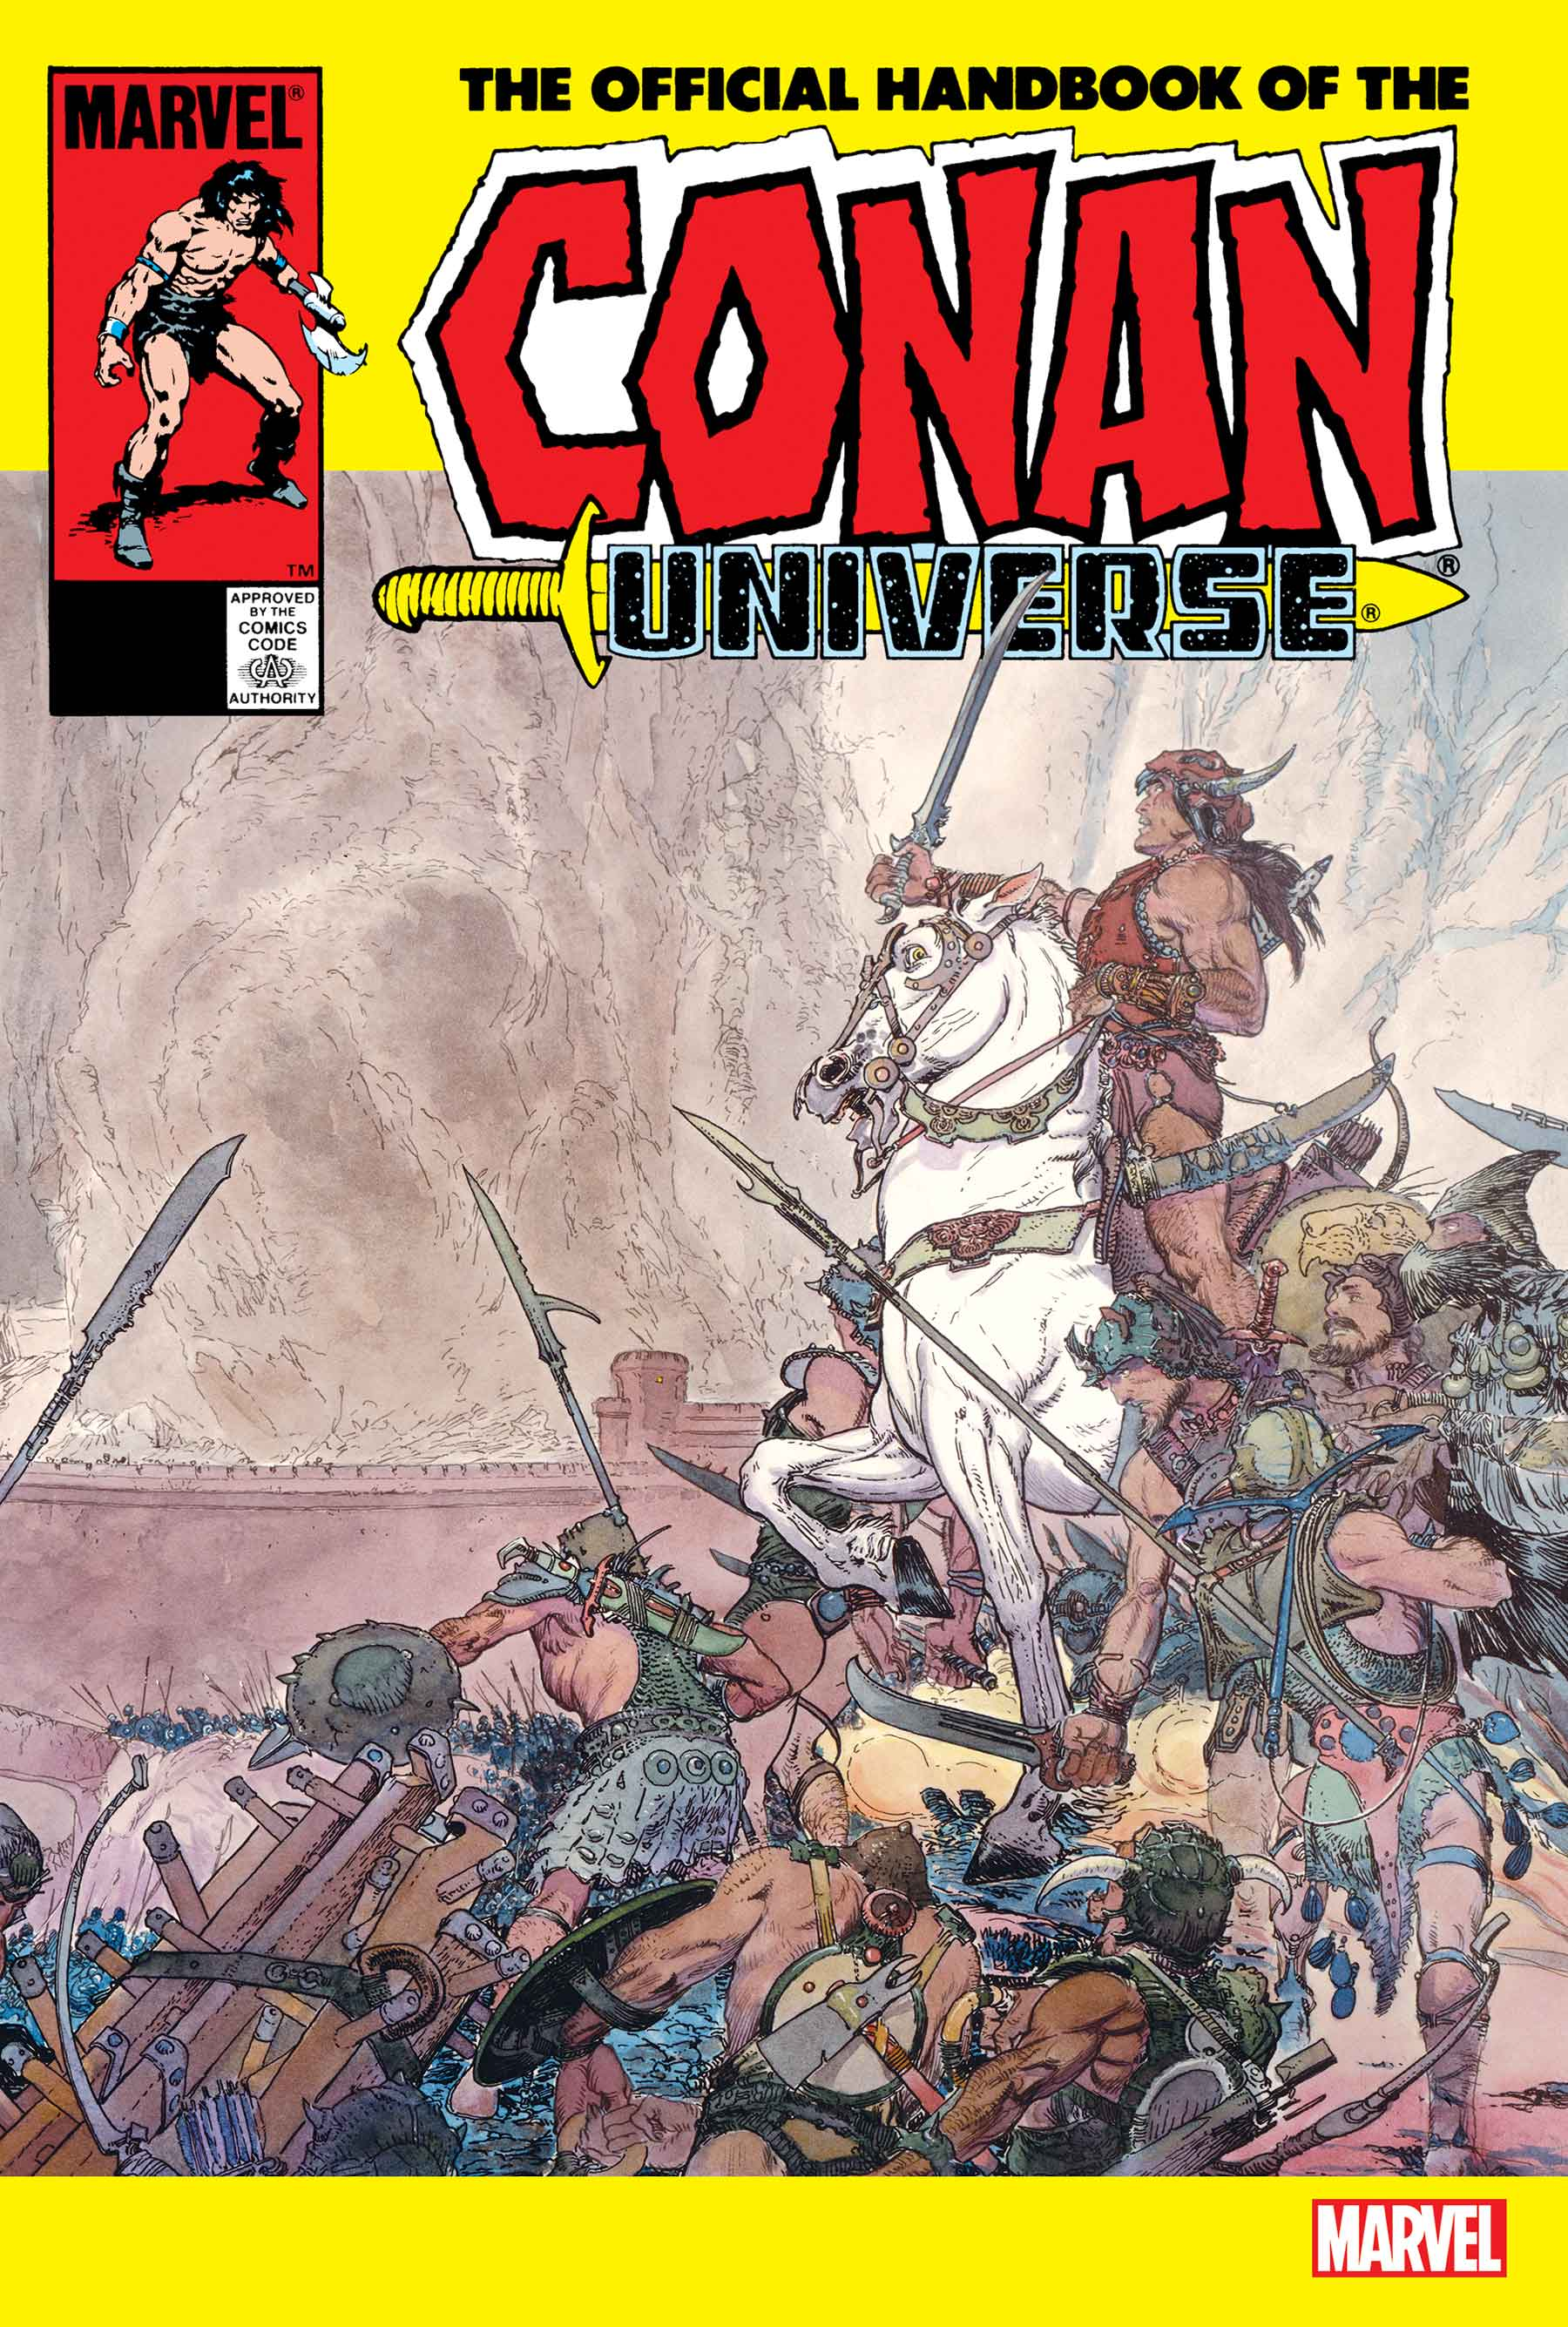 THE OFFICIAL HANDBOOK OF THE CONAN UNIVERSE ANNIVERSARY EDITION (2020) #1